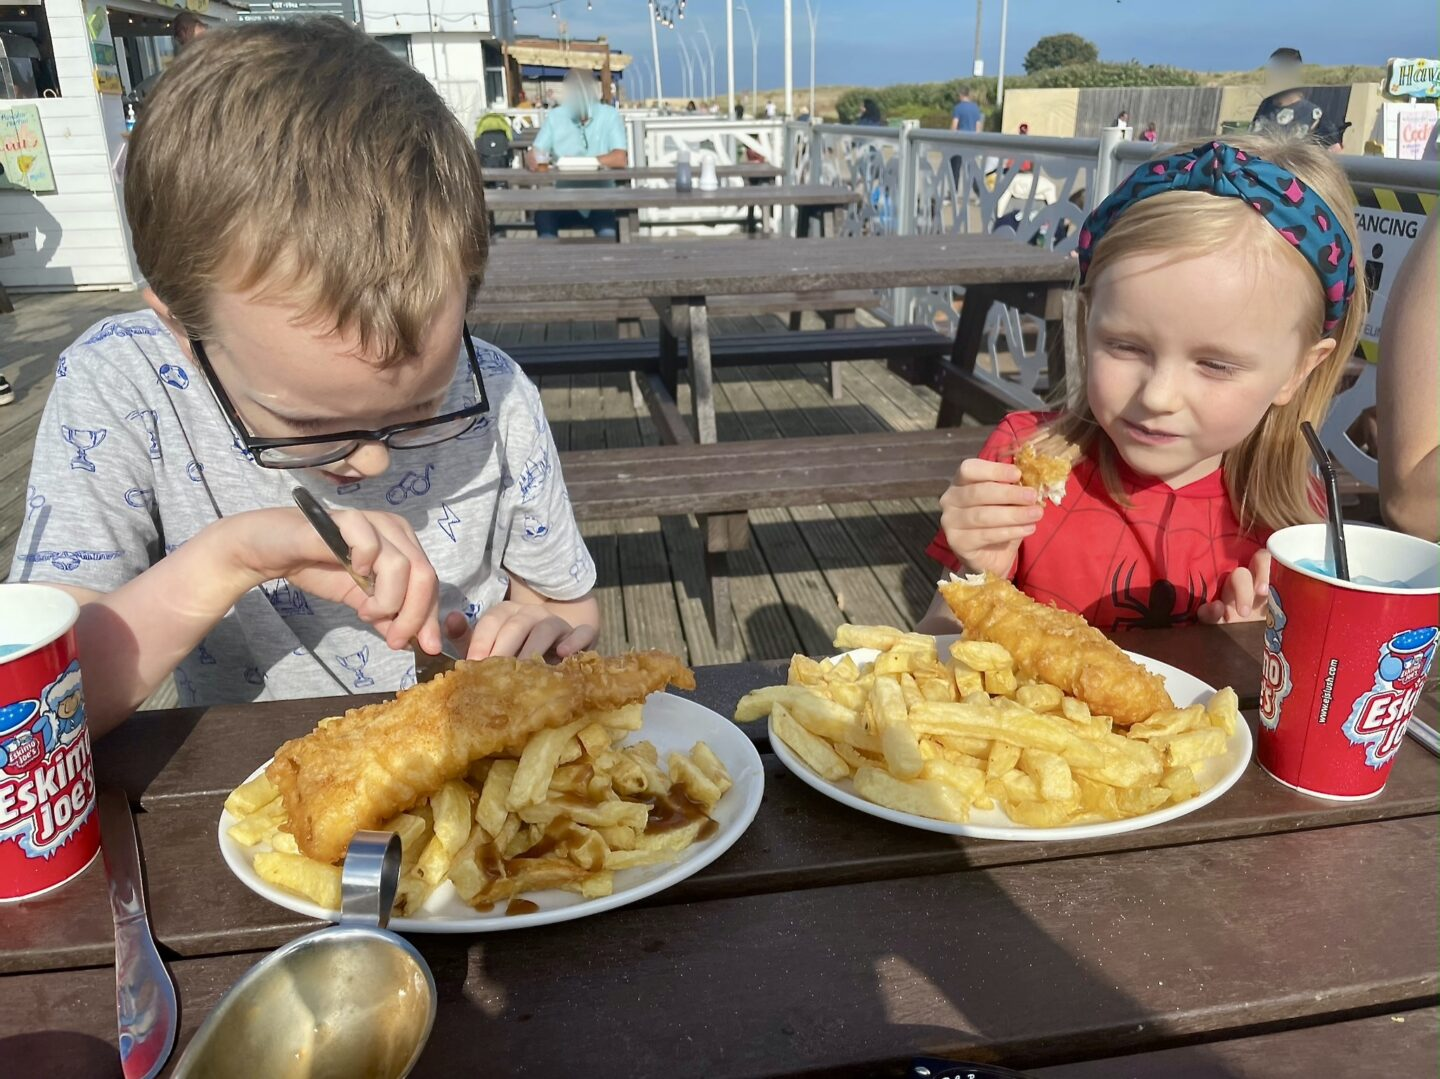 A boy and girl eat plates of fish and chips